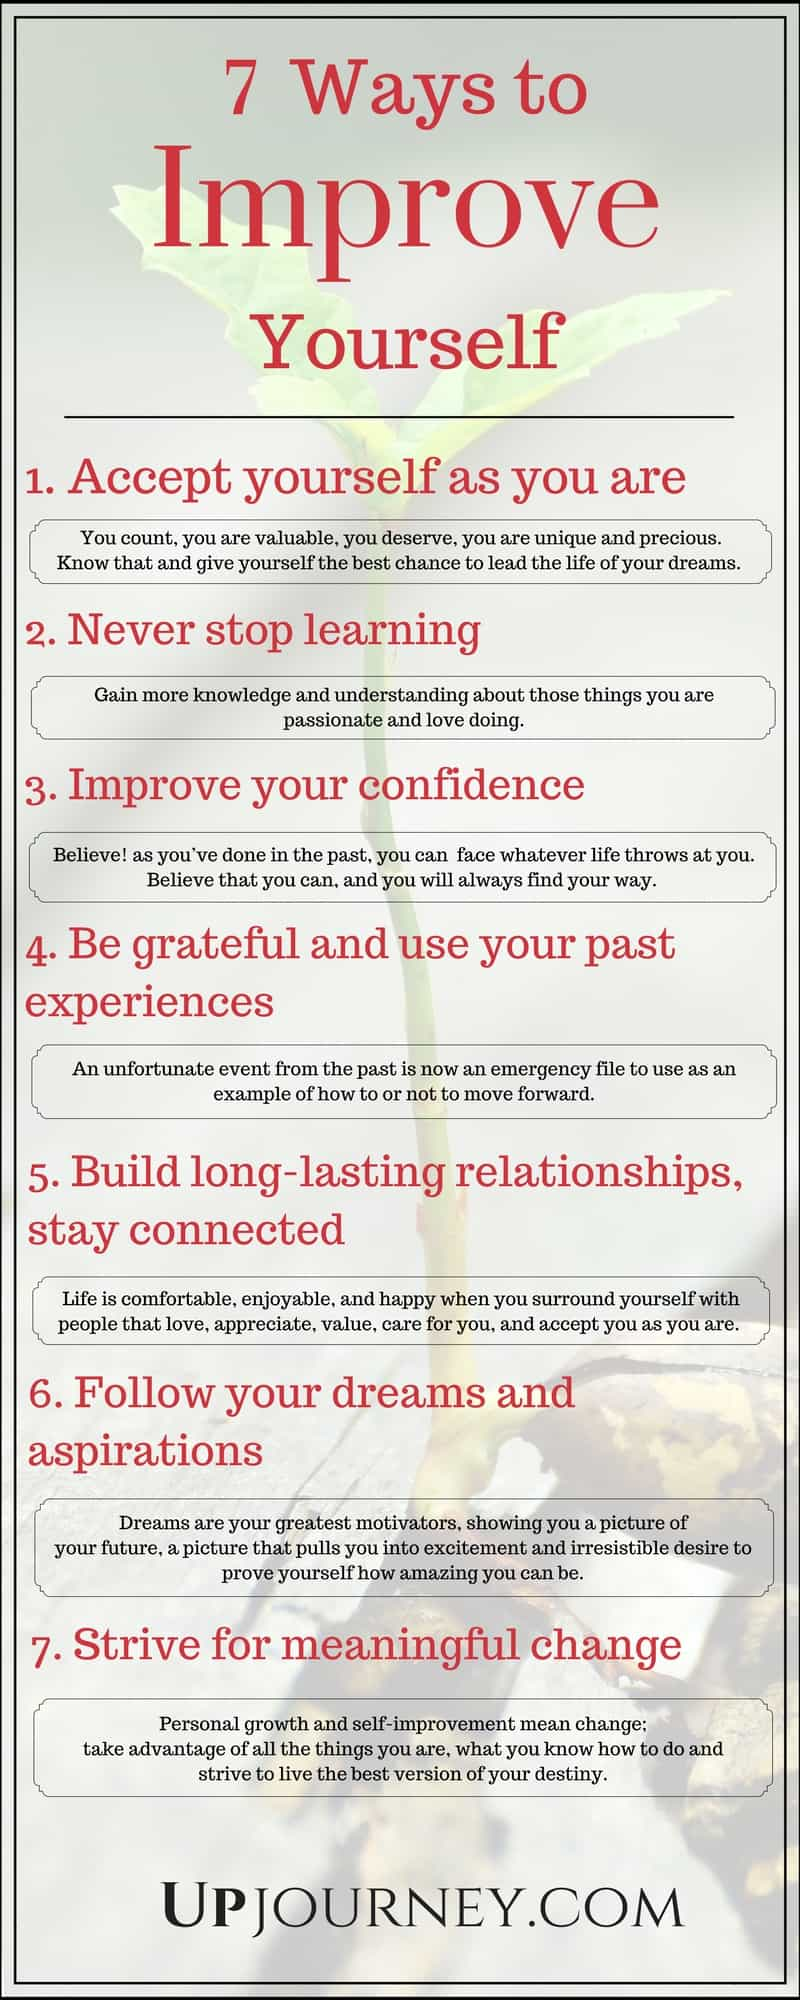 7 Ways to Improve Yourself Every Day